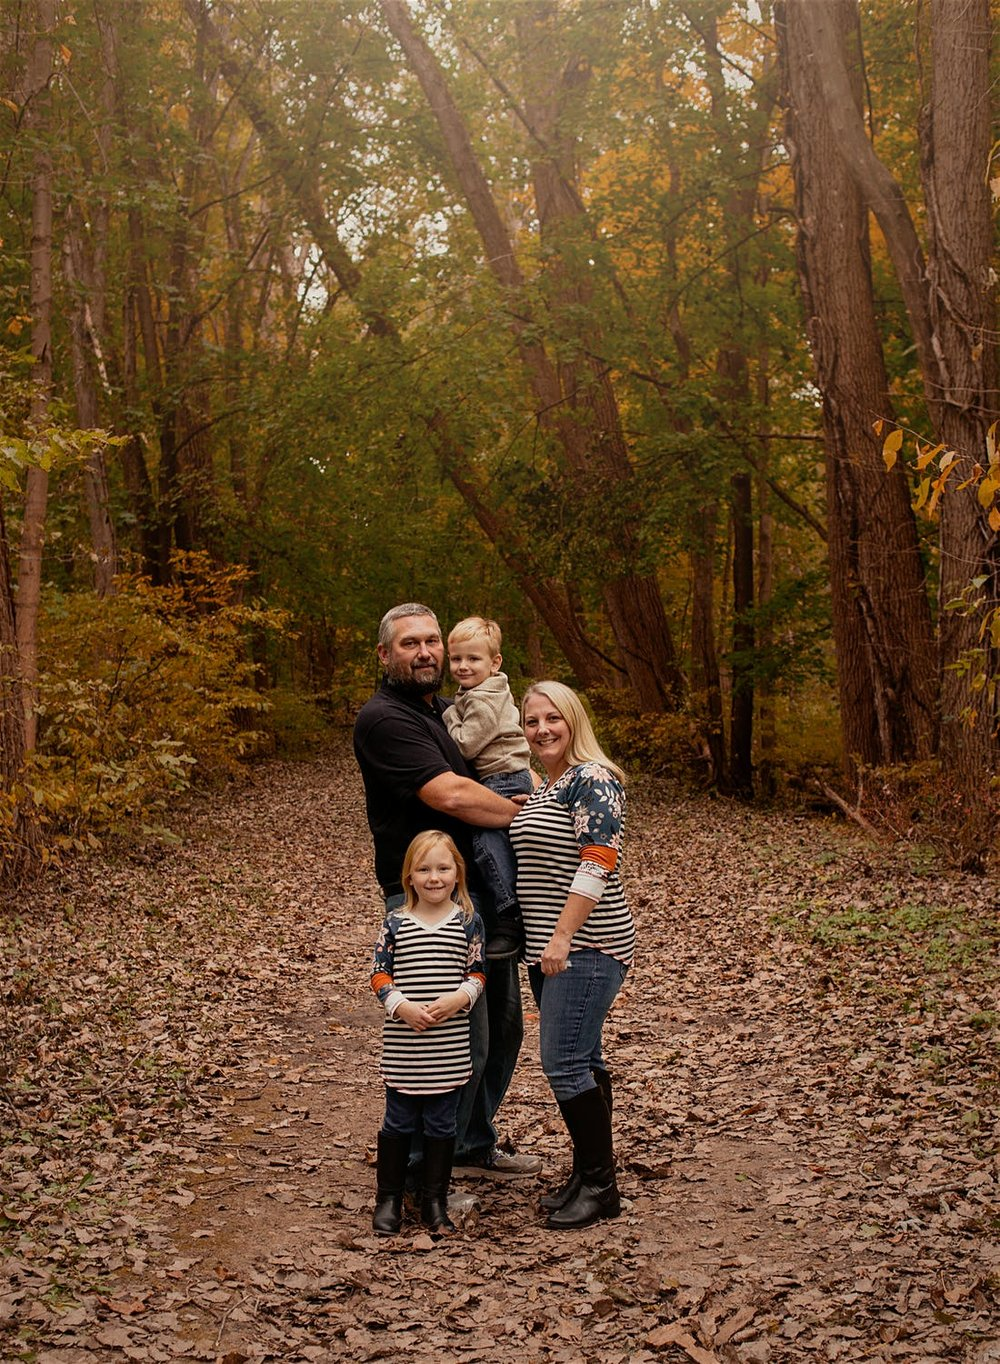 St. Joseph Michigan Fall Family Photography24.jpg